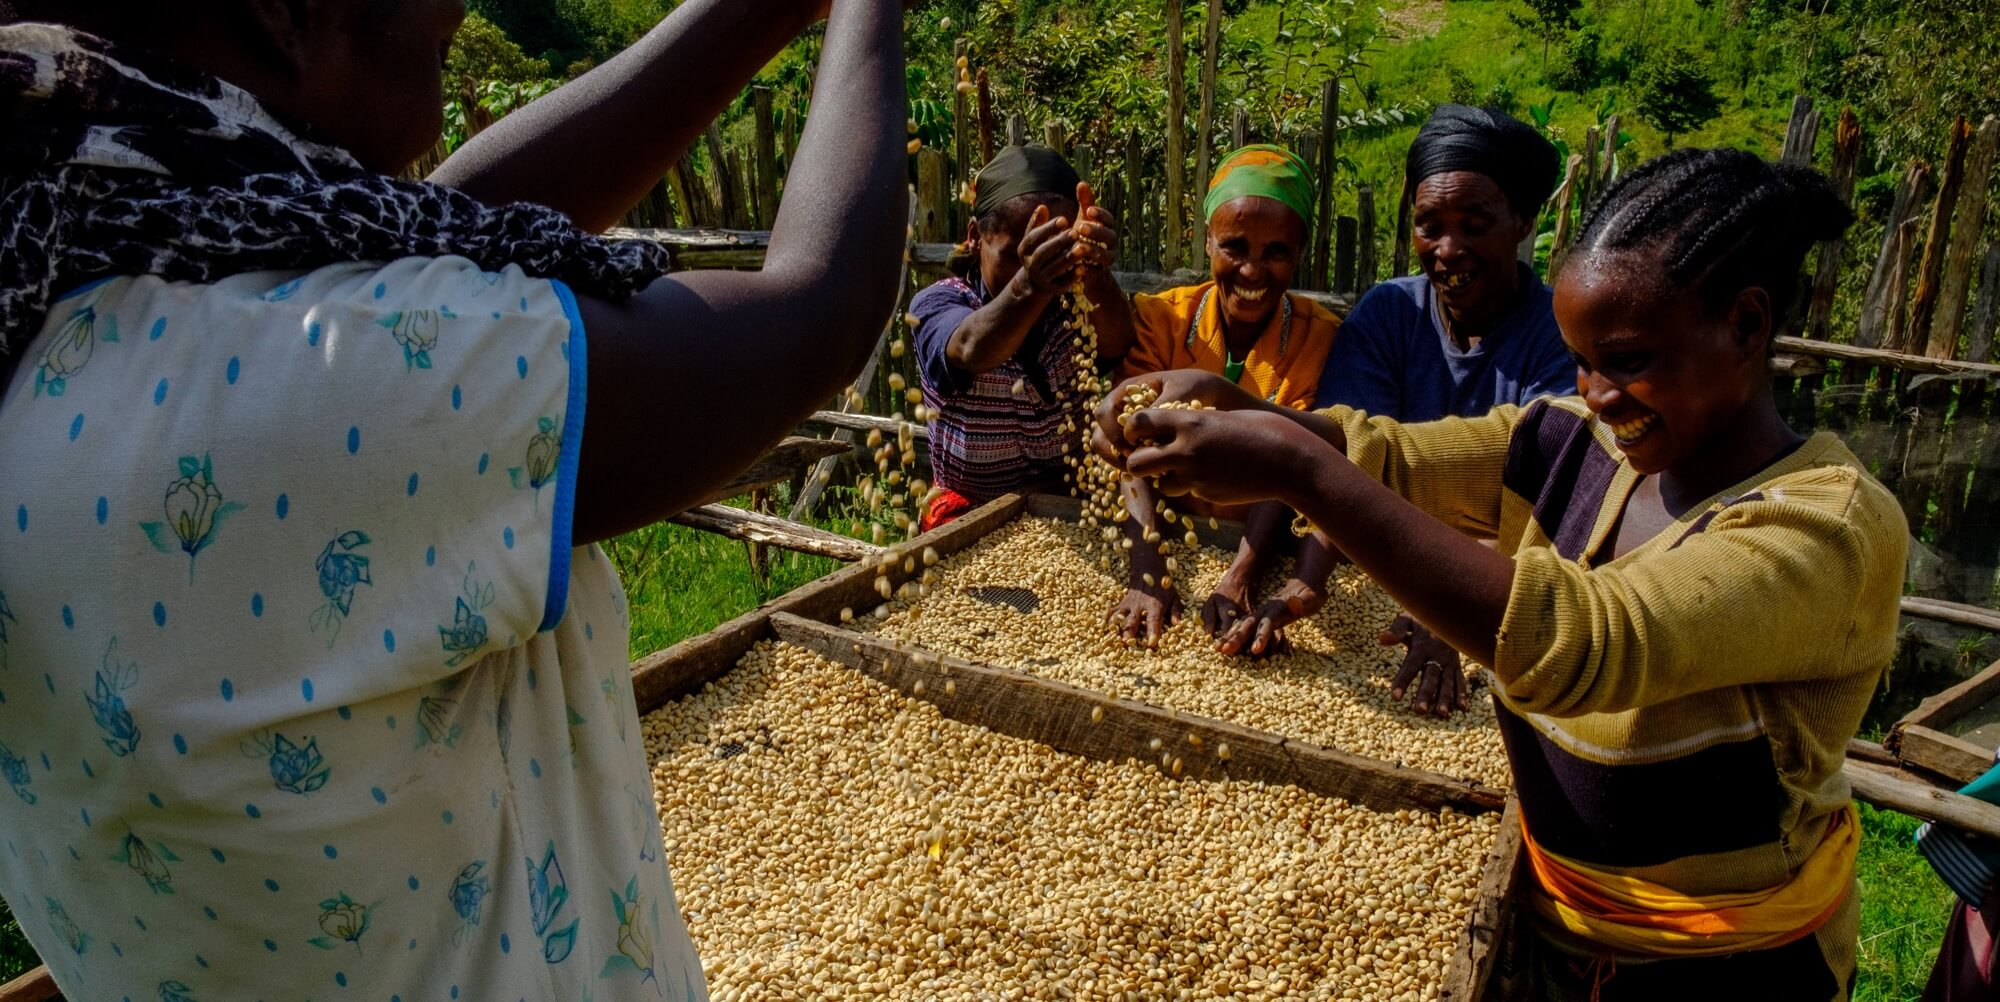 Coffee processing in the Ethiopia Damo station